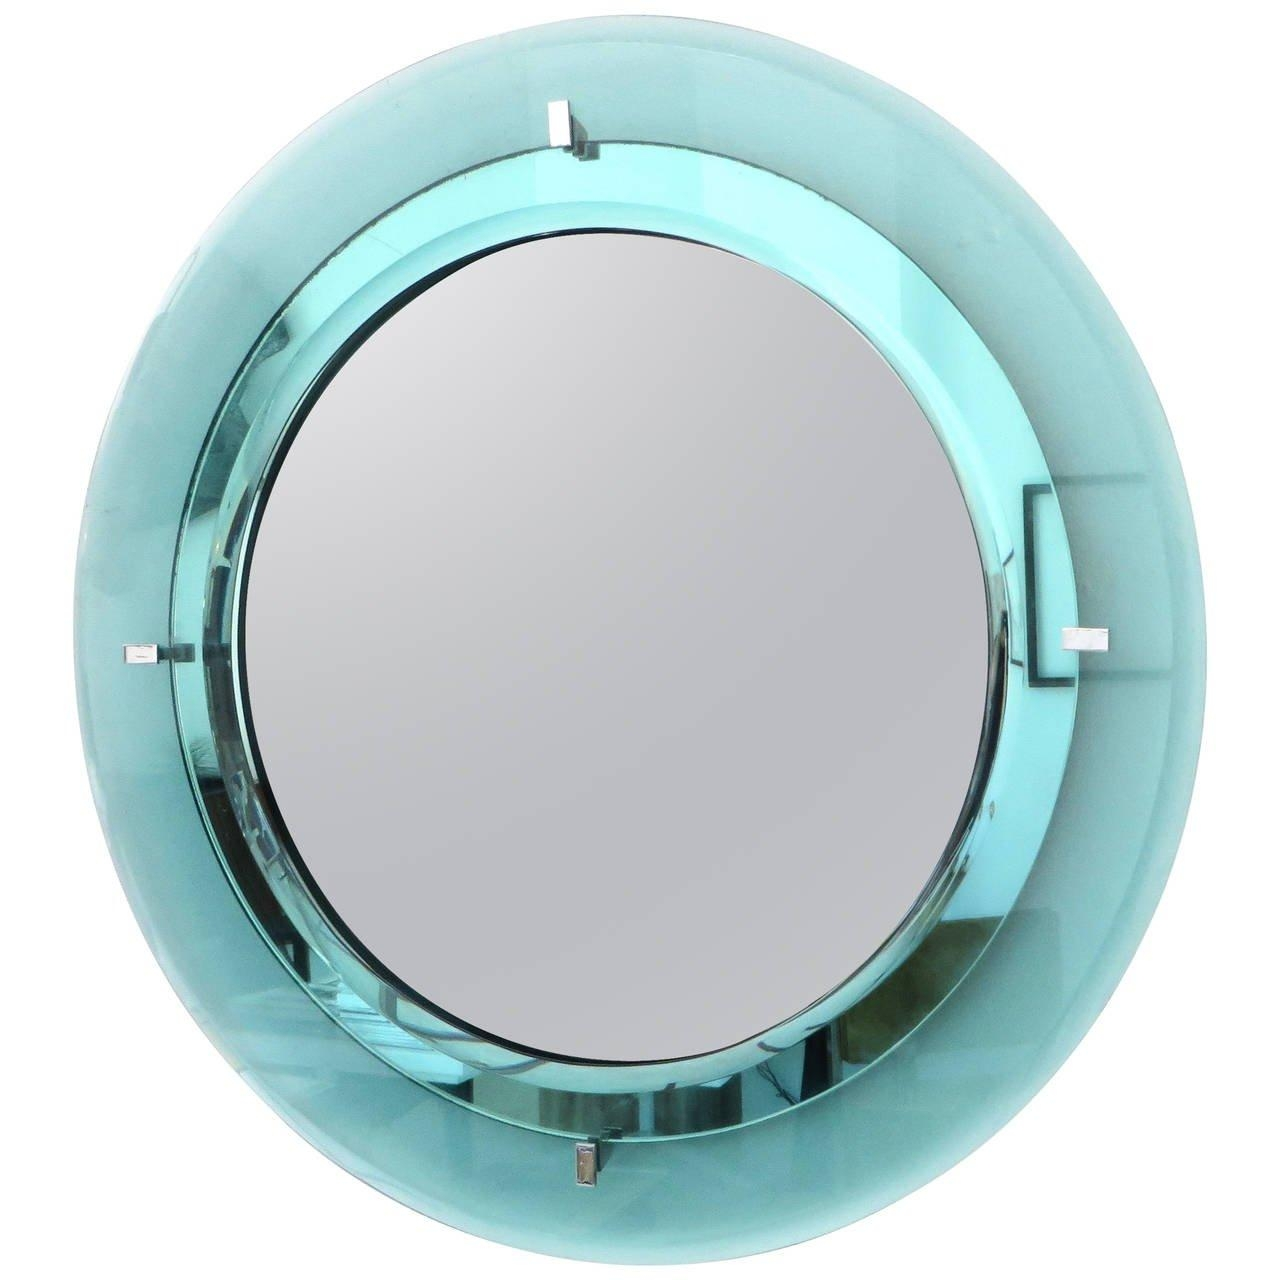 Pale Aqua Blue Italian Fontana Arte Round Beveled Mirror At 1Stdibs For Round Bevelled Mirror (Image 7 of 20)